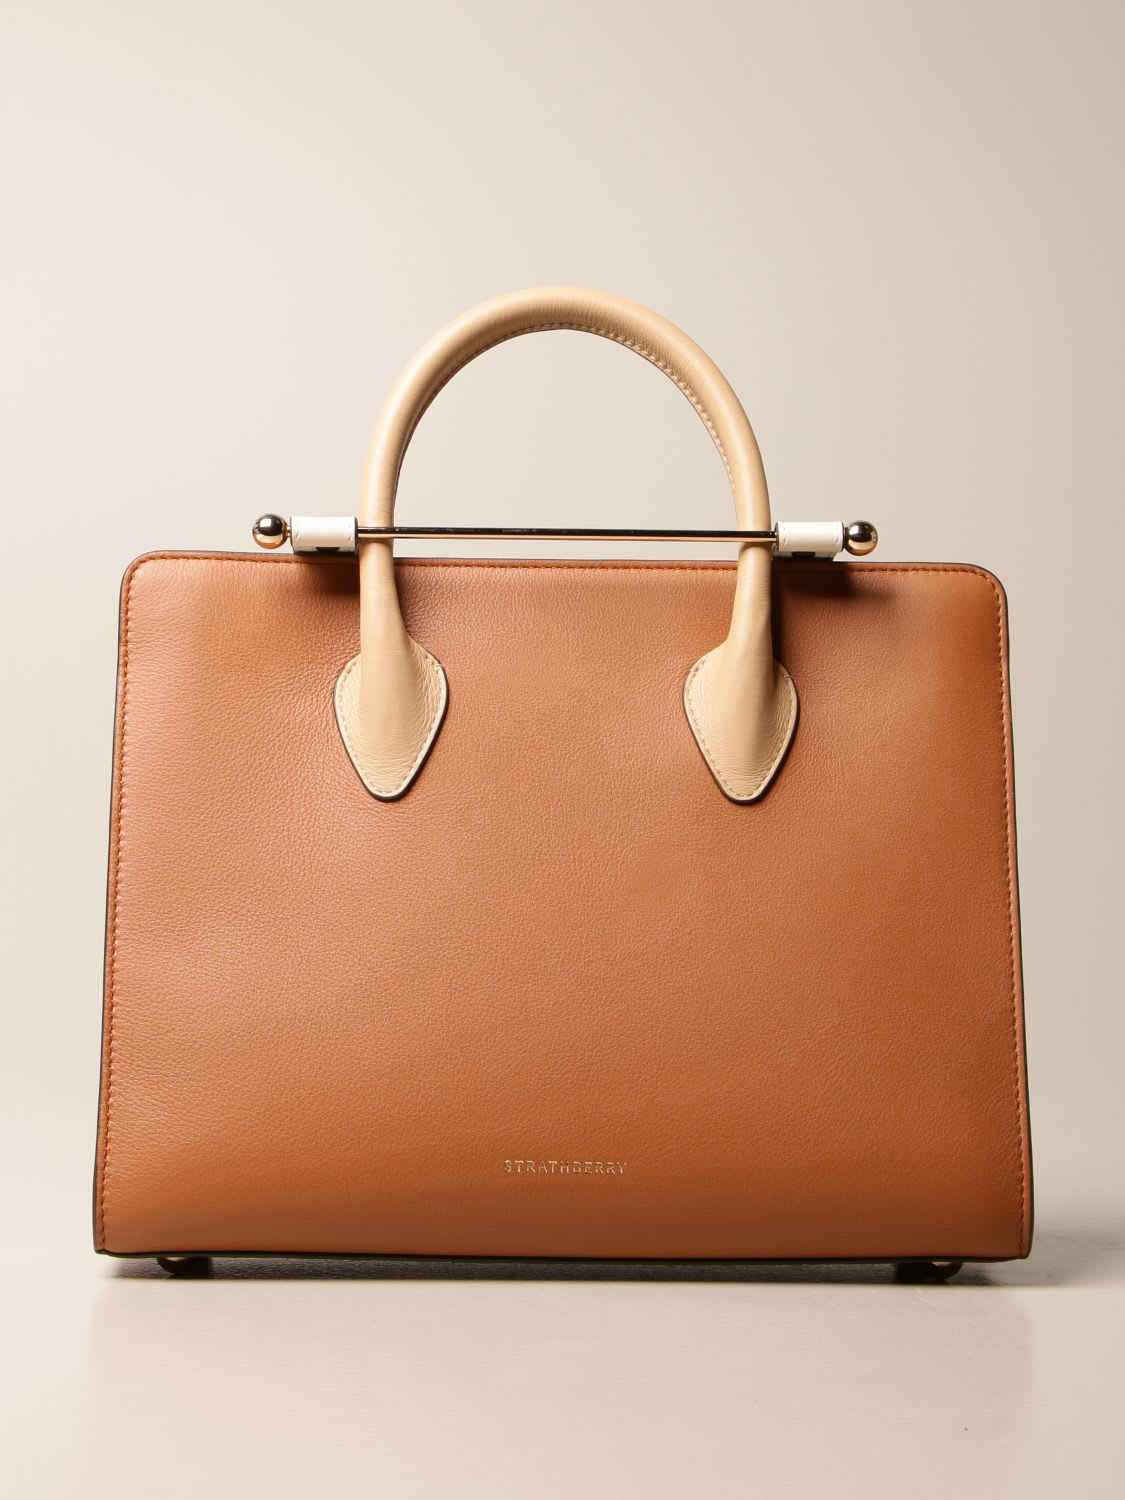 Strathberry Tote Bags Strathberry Midi Tote Bag In Tricolor Leather